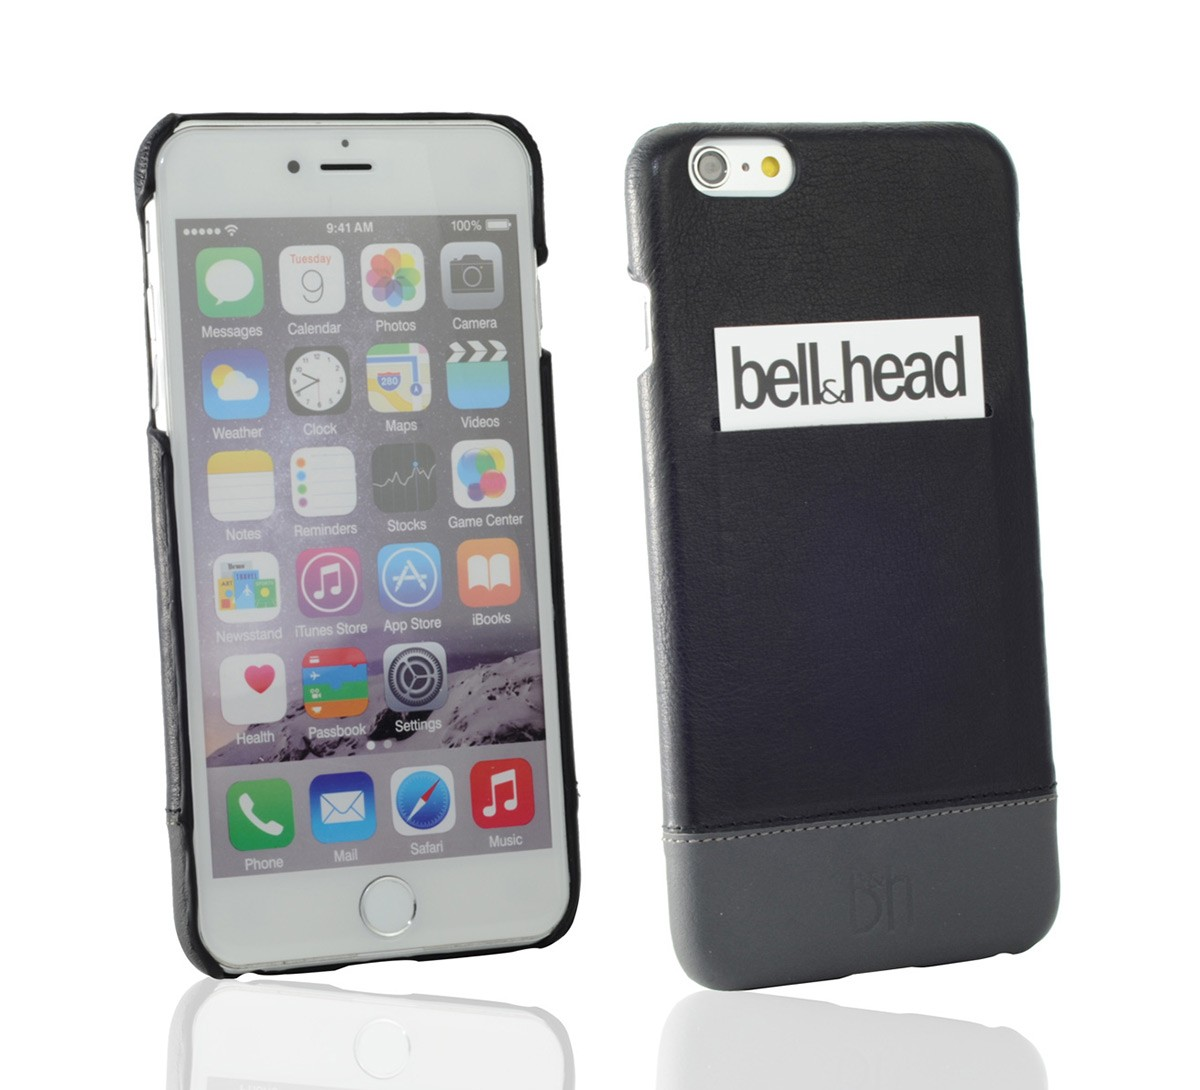 bell head backcover rush f r iphone und samsung galaxy powered by bell head preiswerte. Black Bedroom Furniture Sets. Home Design Ideas